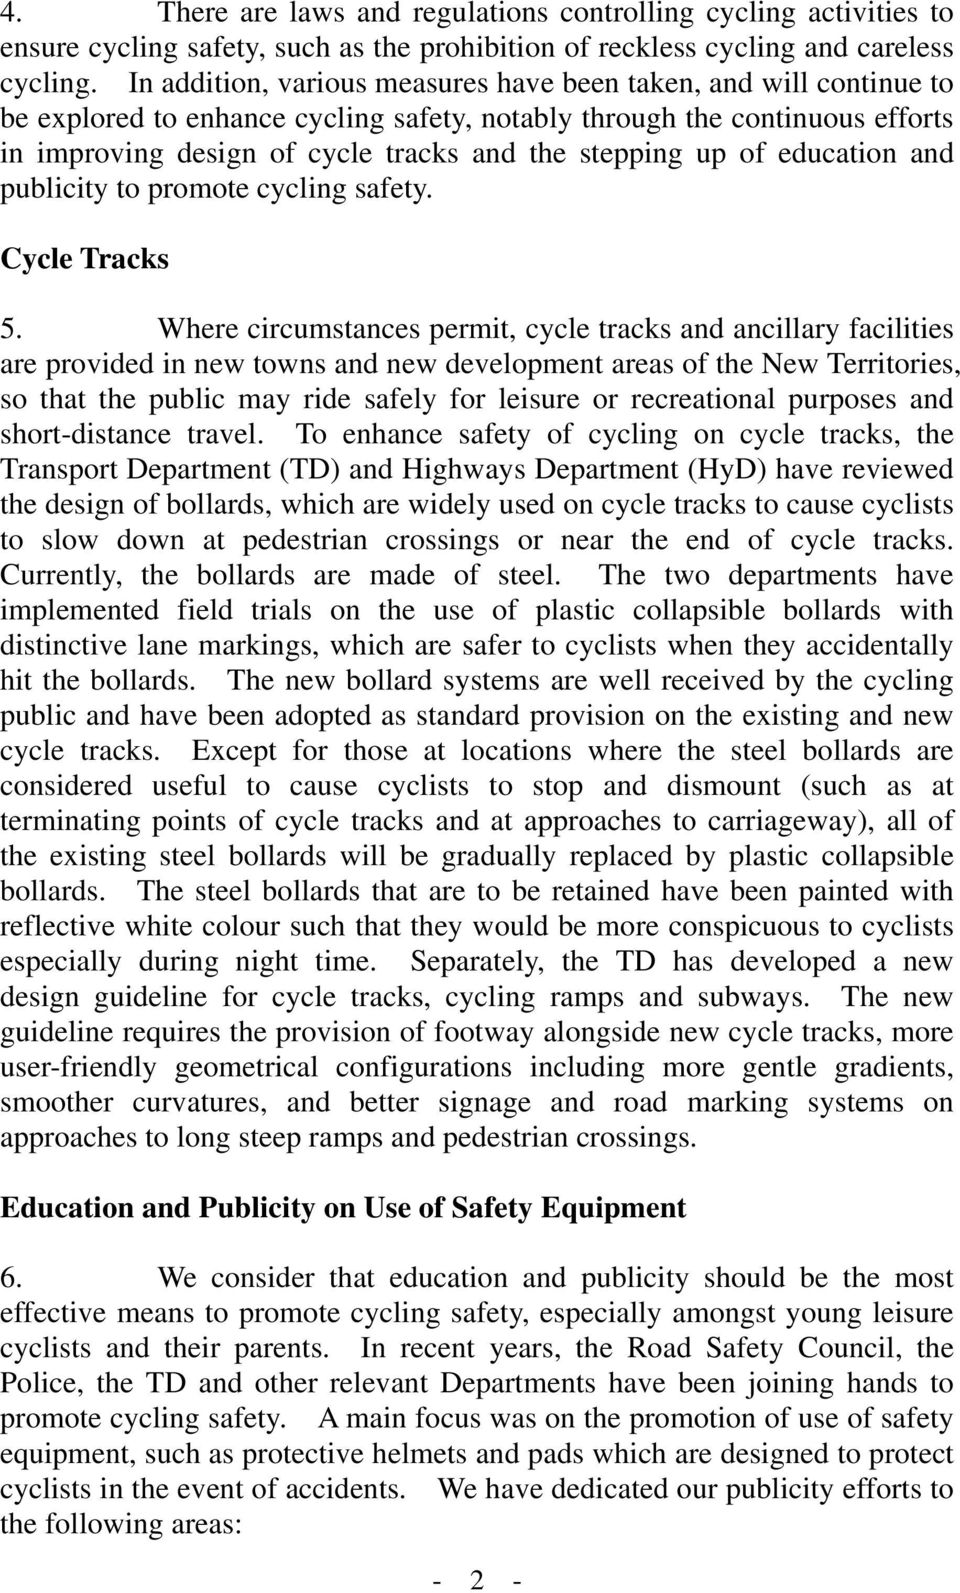 up of education and publicity to promote cycling safety. Cycle Tracks 5.